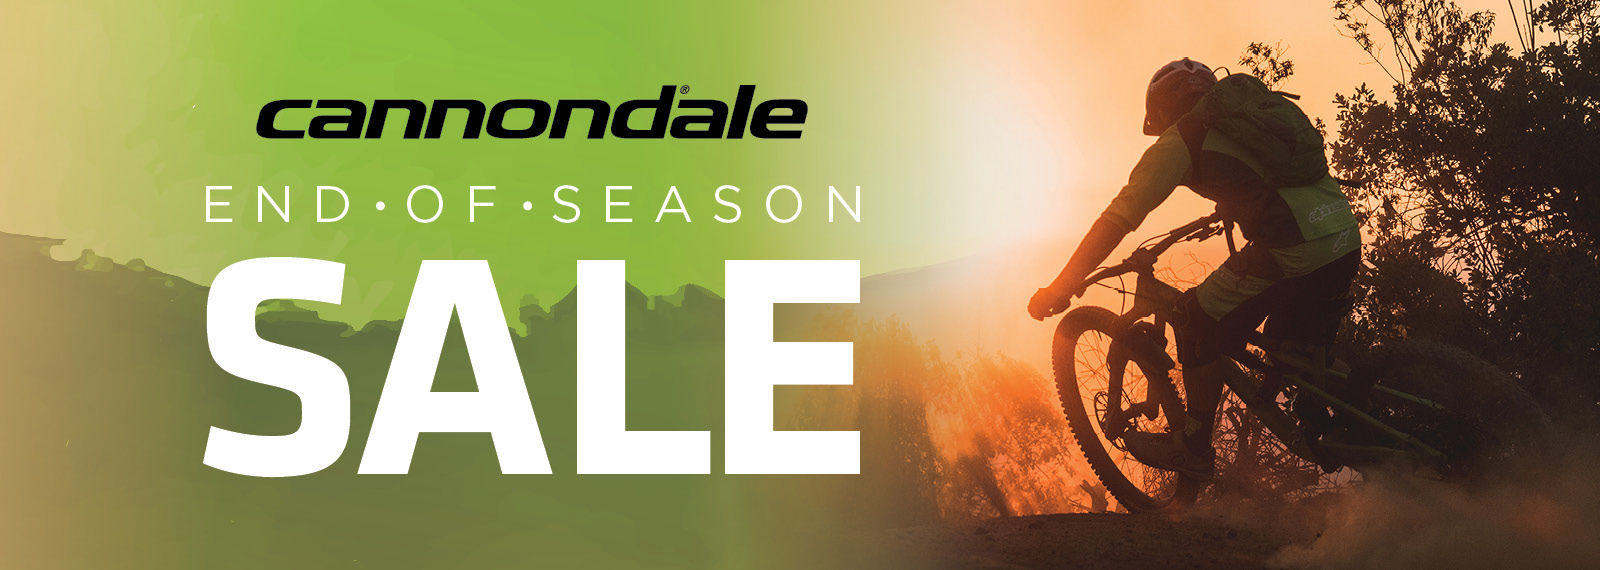 3db1cc5575e Click the image to go to the Cannondale End of Season Sale site. Browse the  bikes on sale and when you have picked out a bike, you will be asked to  nominate ...